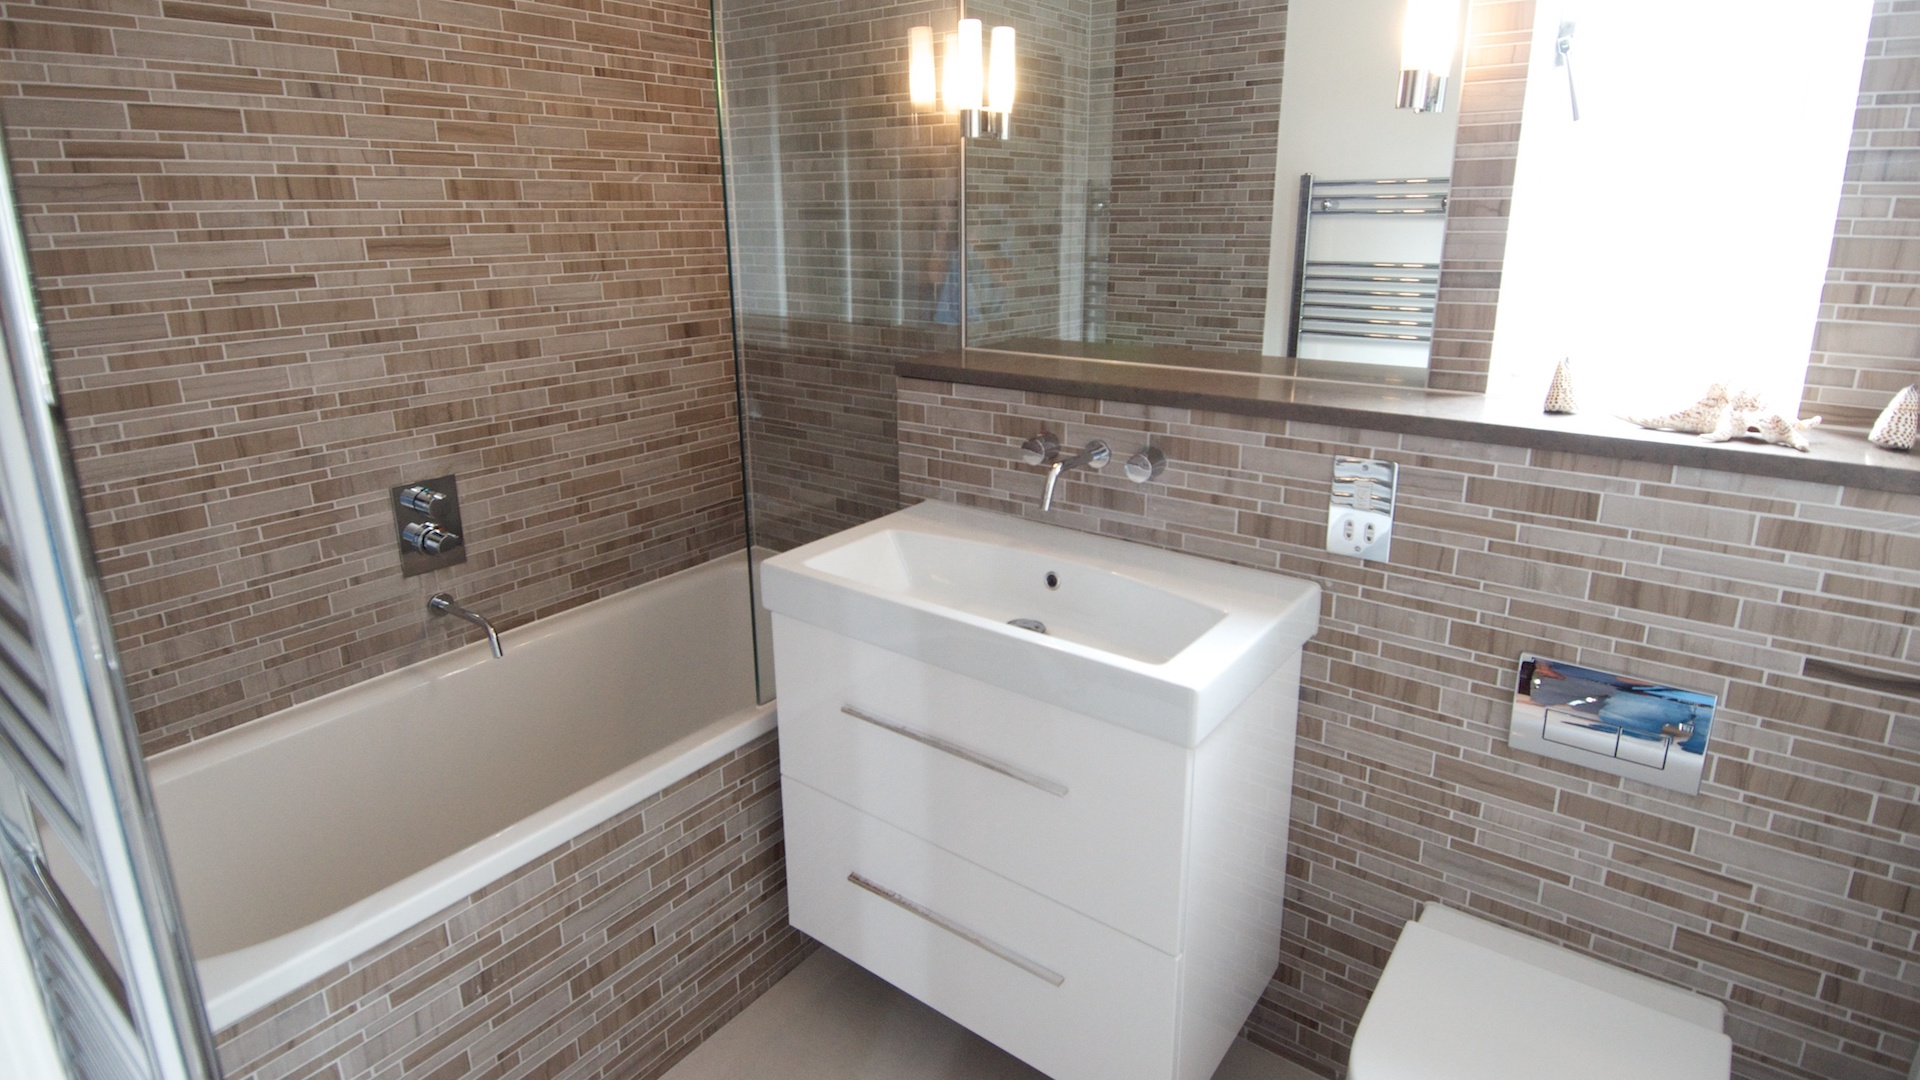 White bathroom sink with white bath and light brown narrow tiles.